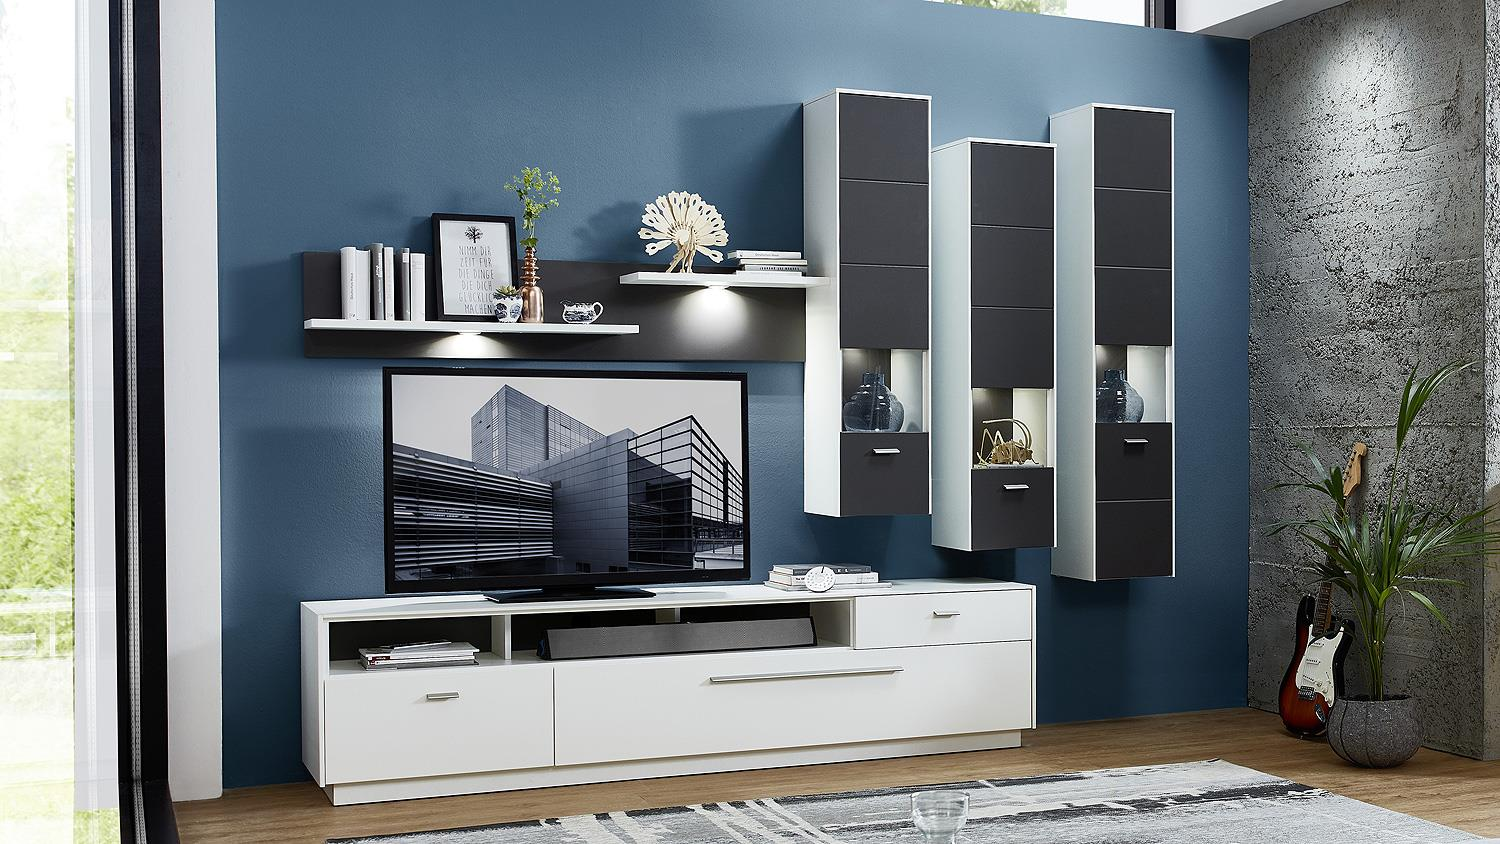 wohnwand 2 tacomas anbauwand in grau wei matt mit led. Black Bedroom Furniture Sets. Home Design Ideas